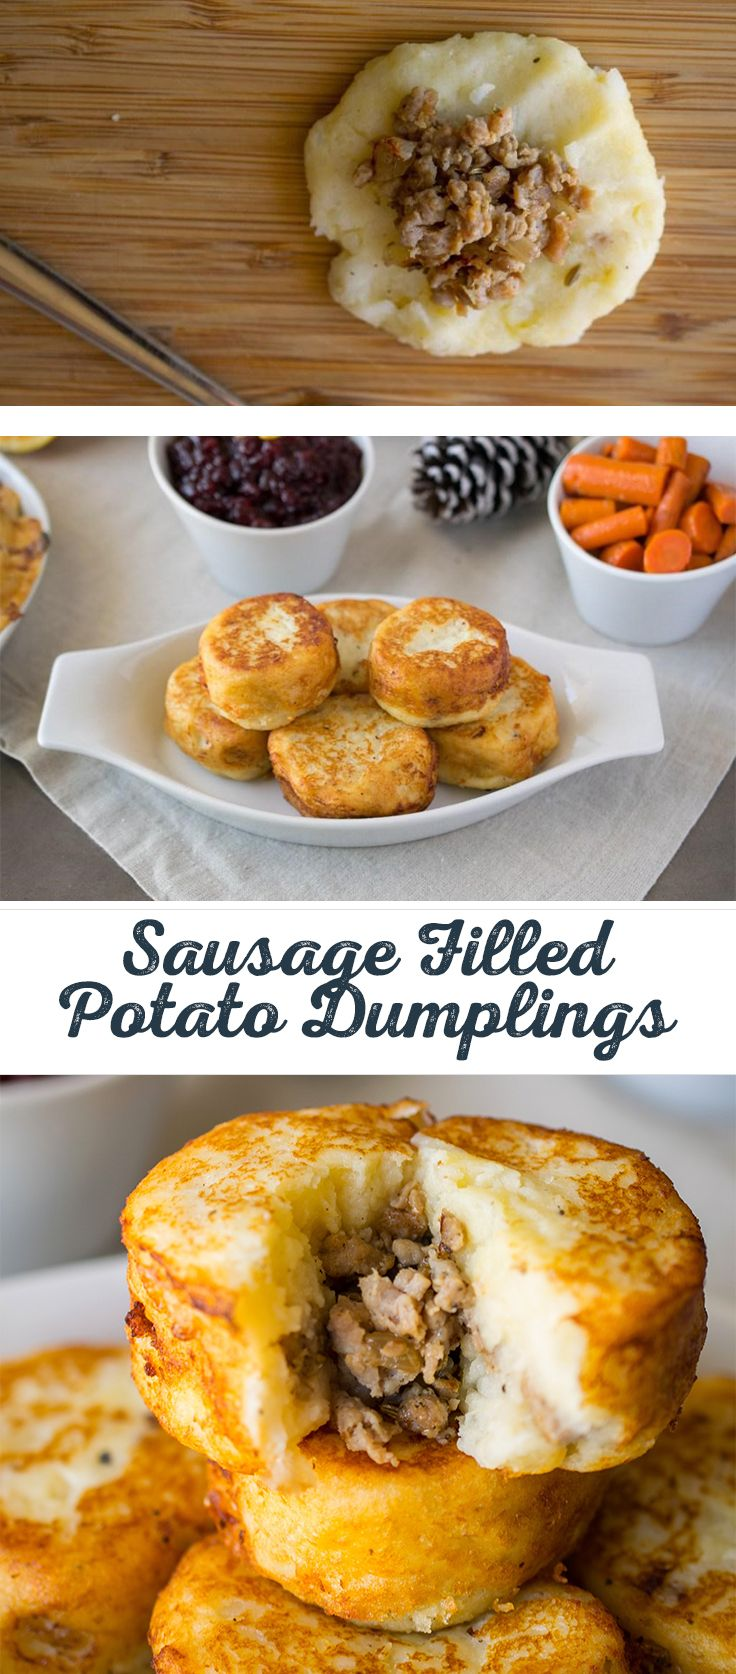 Hungry for meat and potatoes? This tasty dish serves up dumplings in a delicious and creative way! Tennessee proudly serves up these Sausage Filled Potato Dumplings—as a great side dish or appetizer—and you will too. #Tennessee